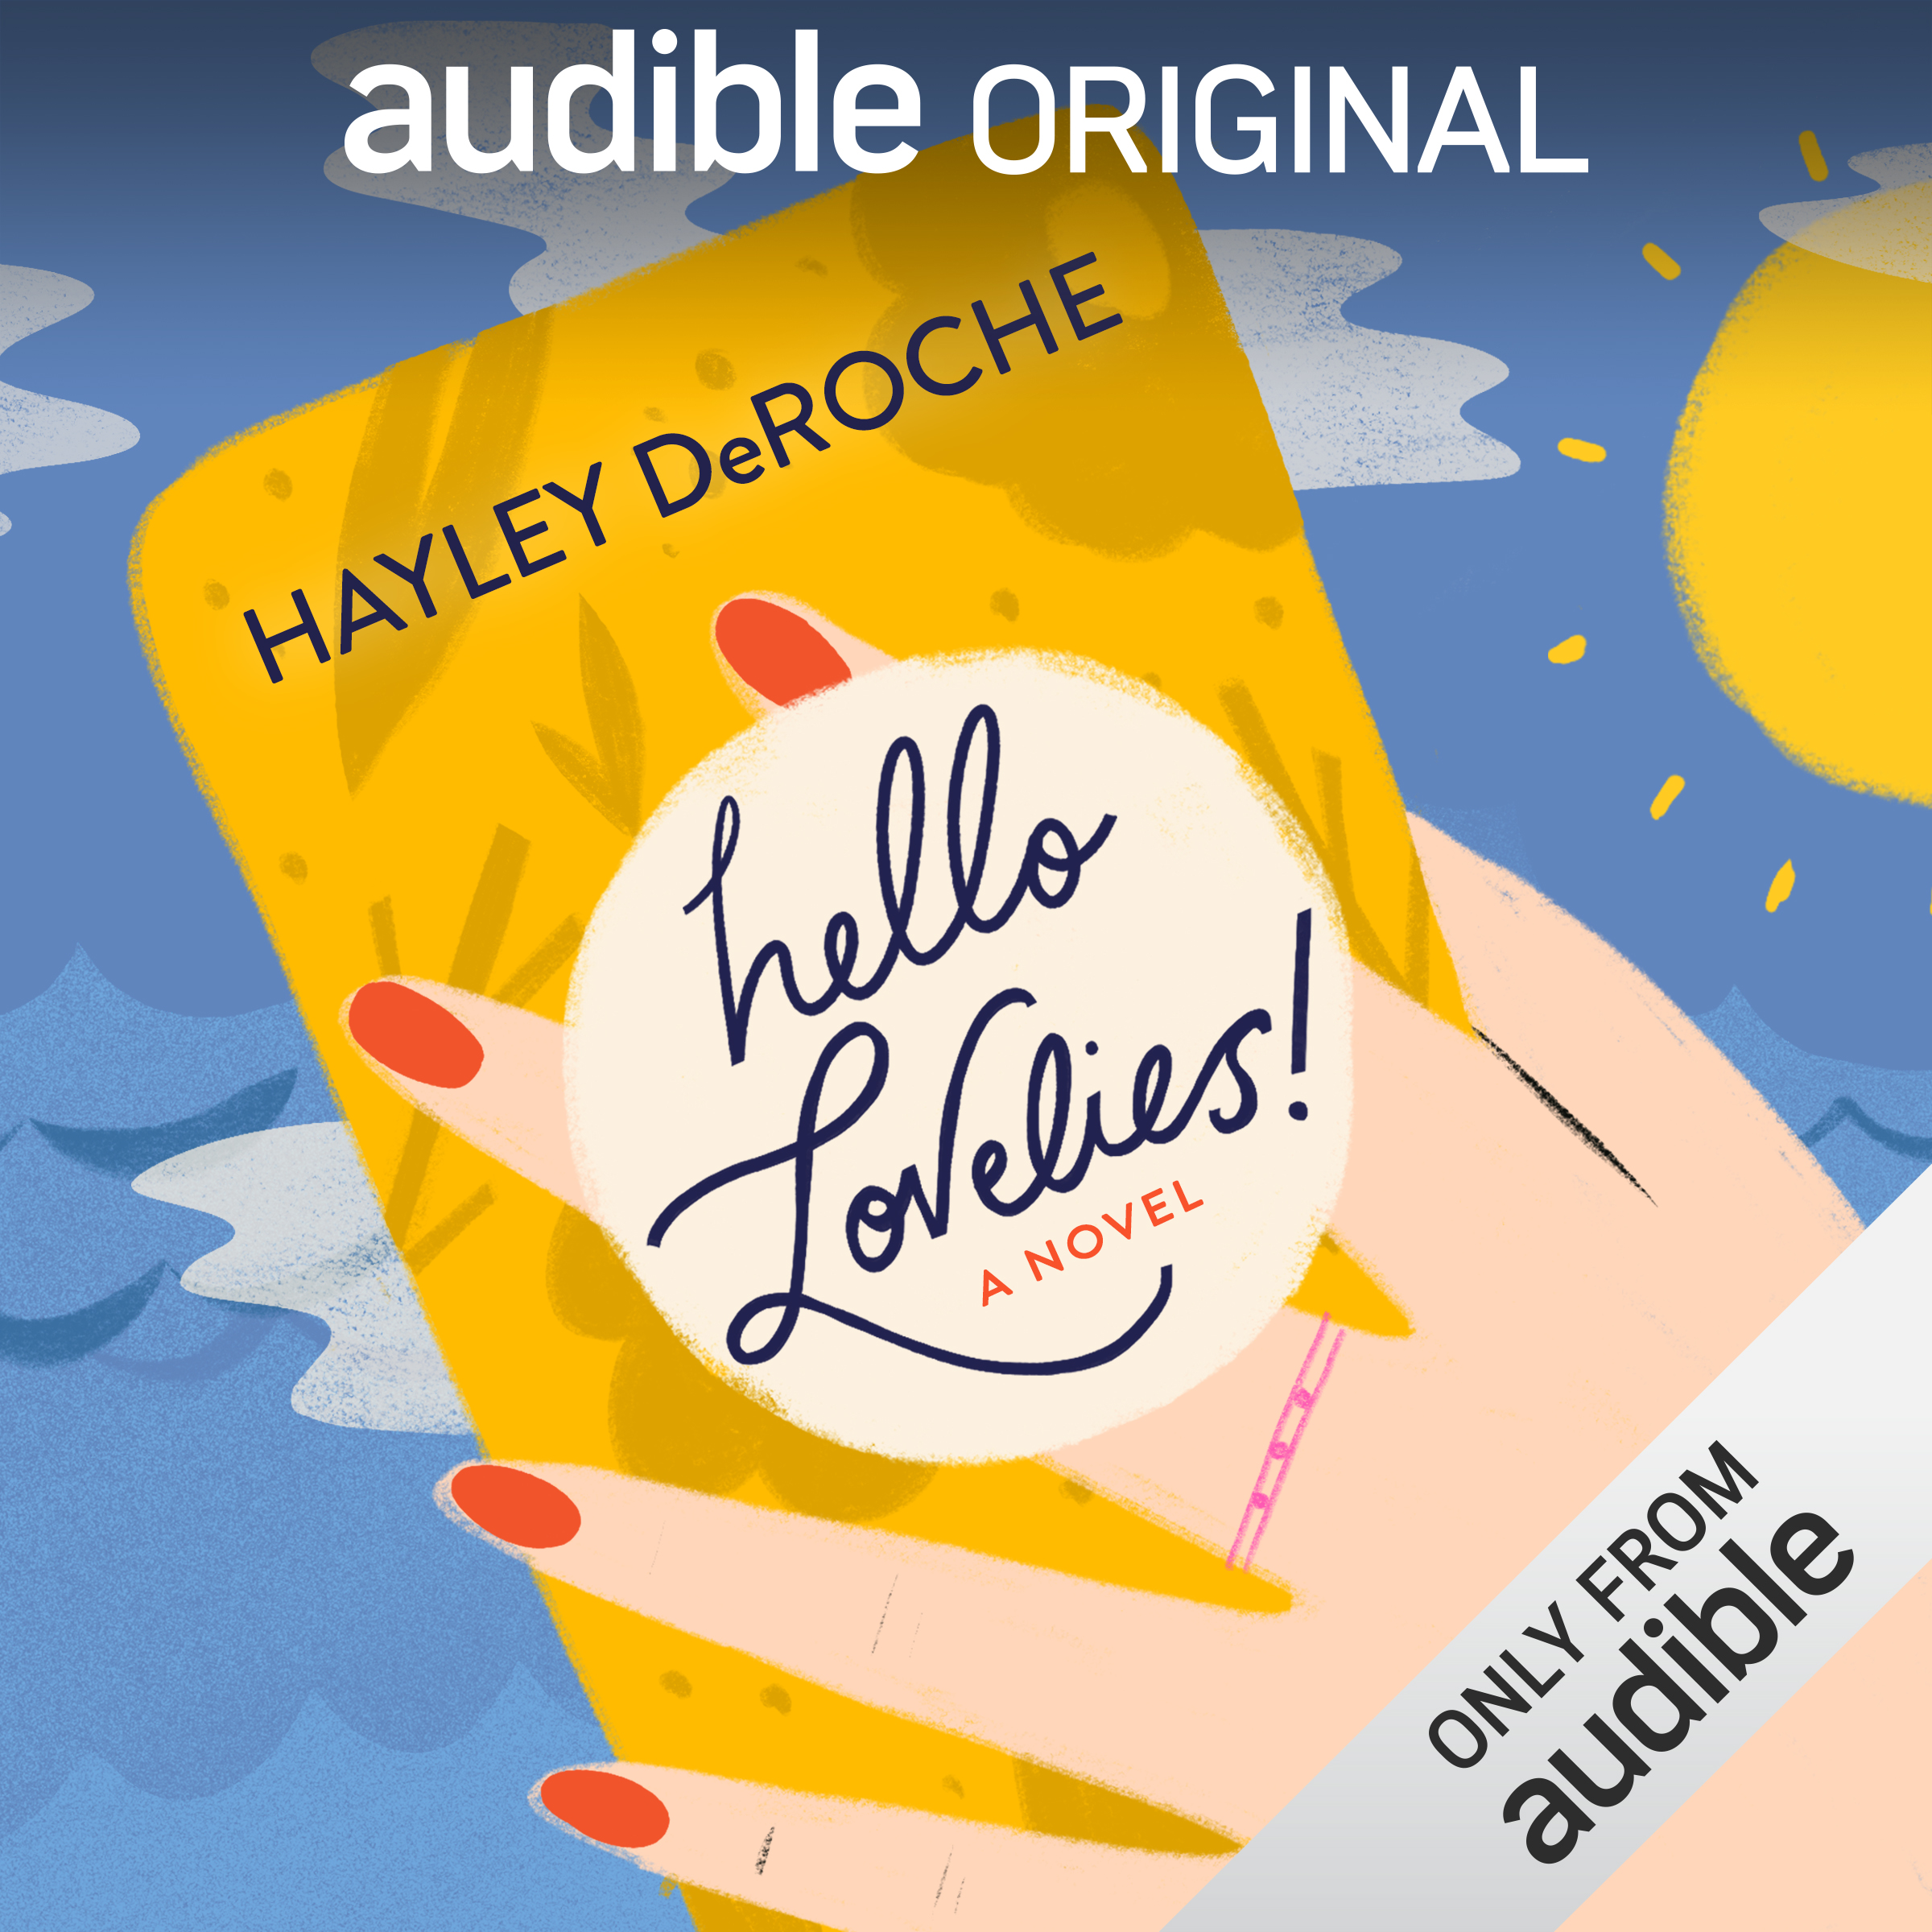 For fans of Sophie Kinsella and Kevin Kwan comes a laugh-out-loud debut that takes listeners inside the cutthroat world of mommy blogging. -